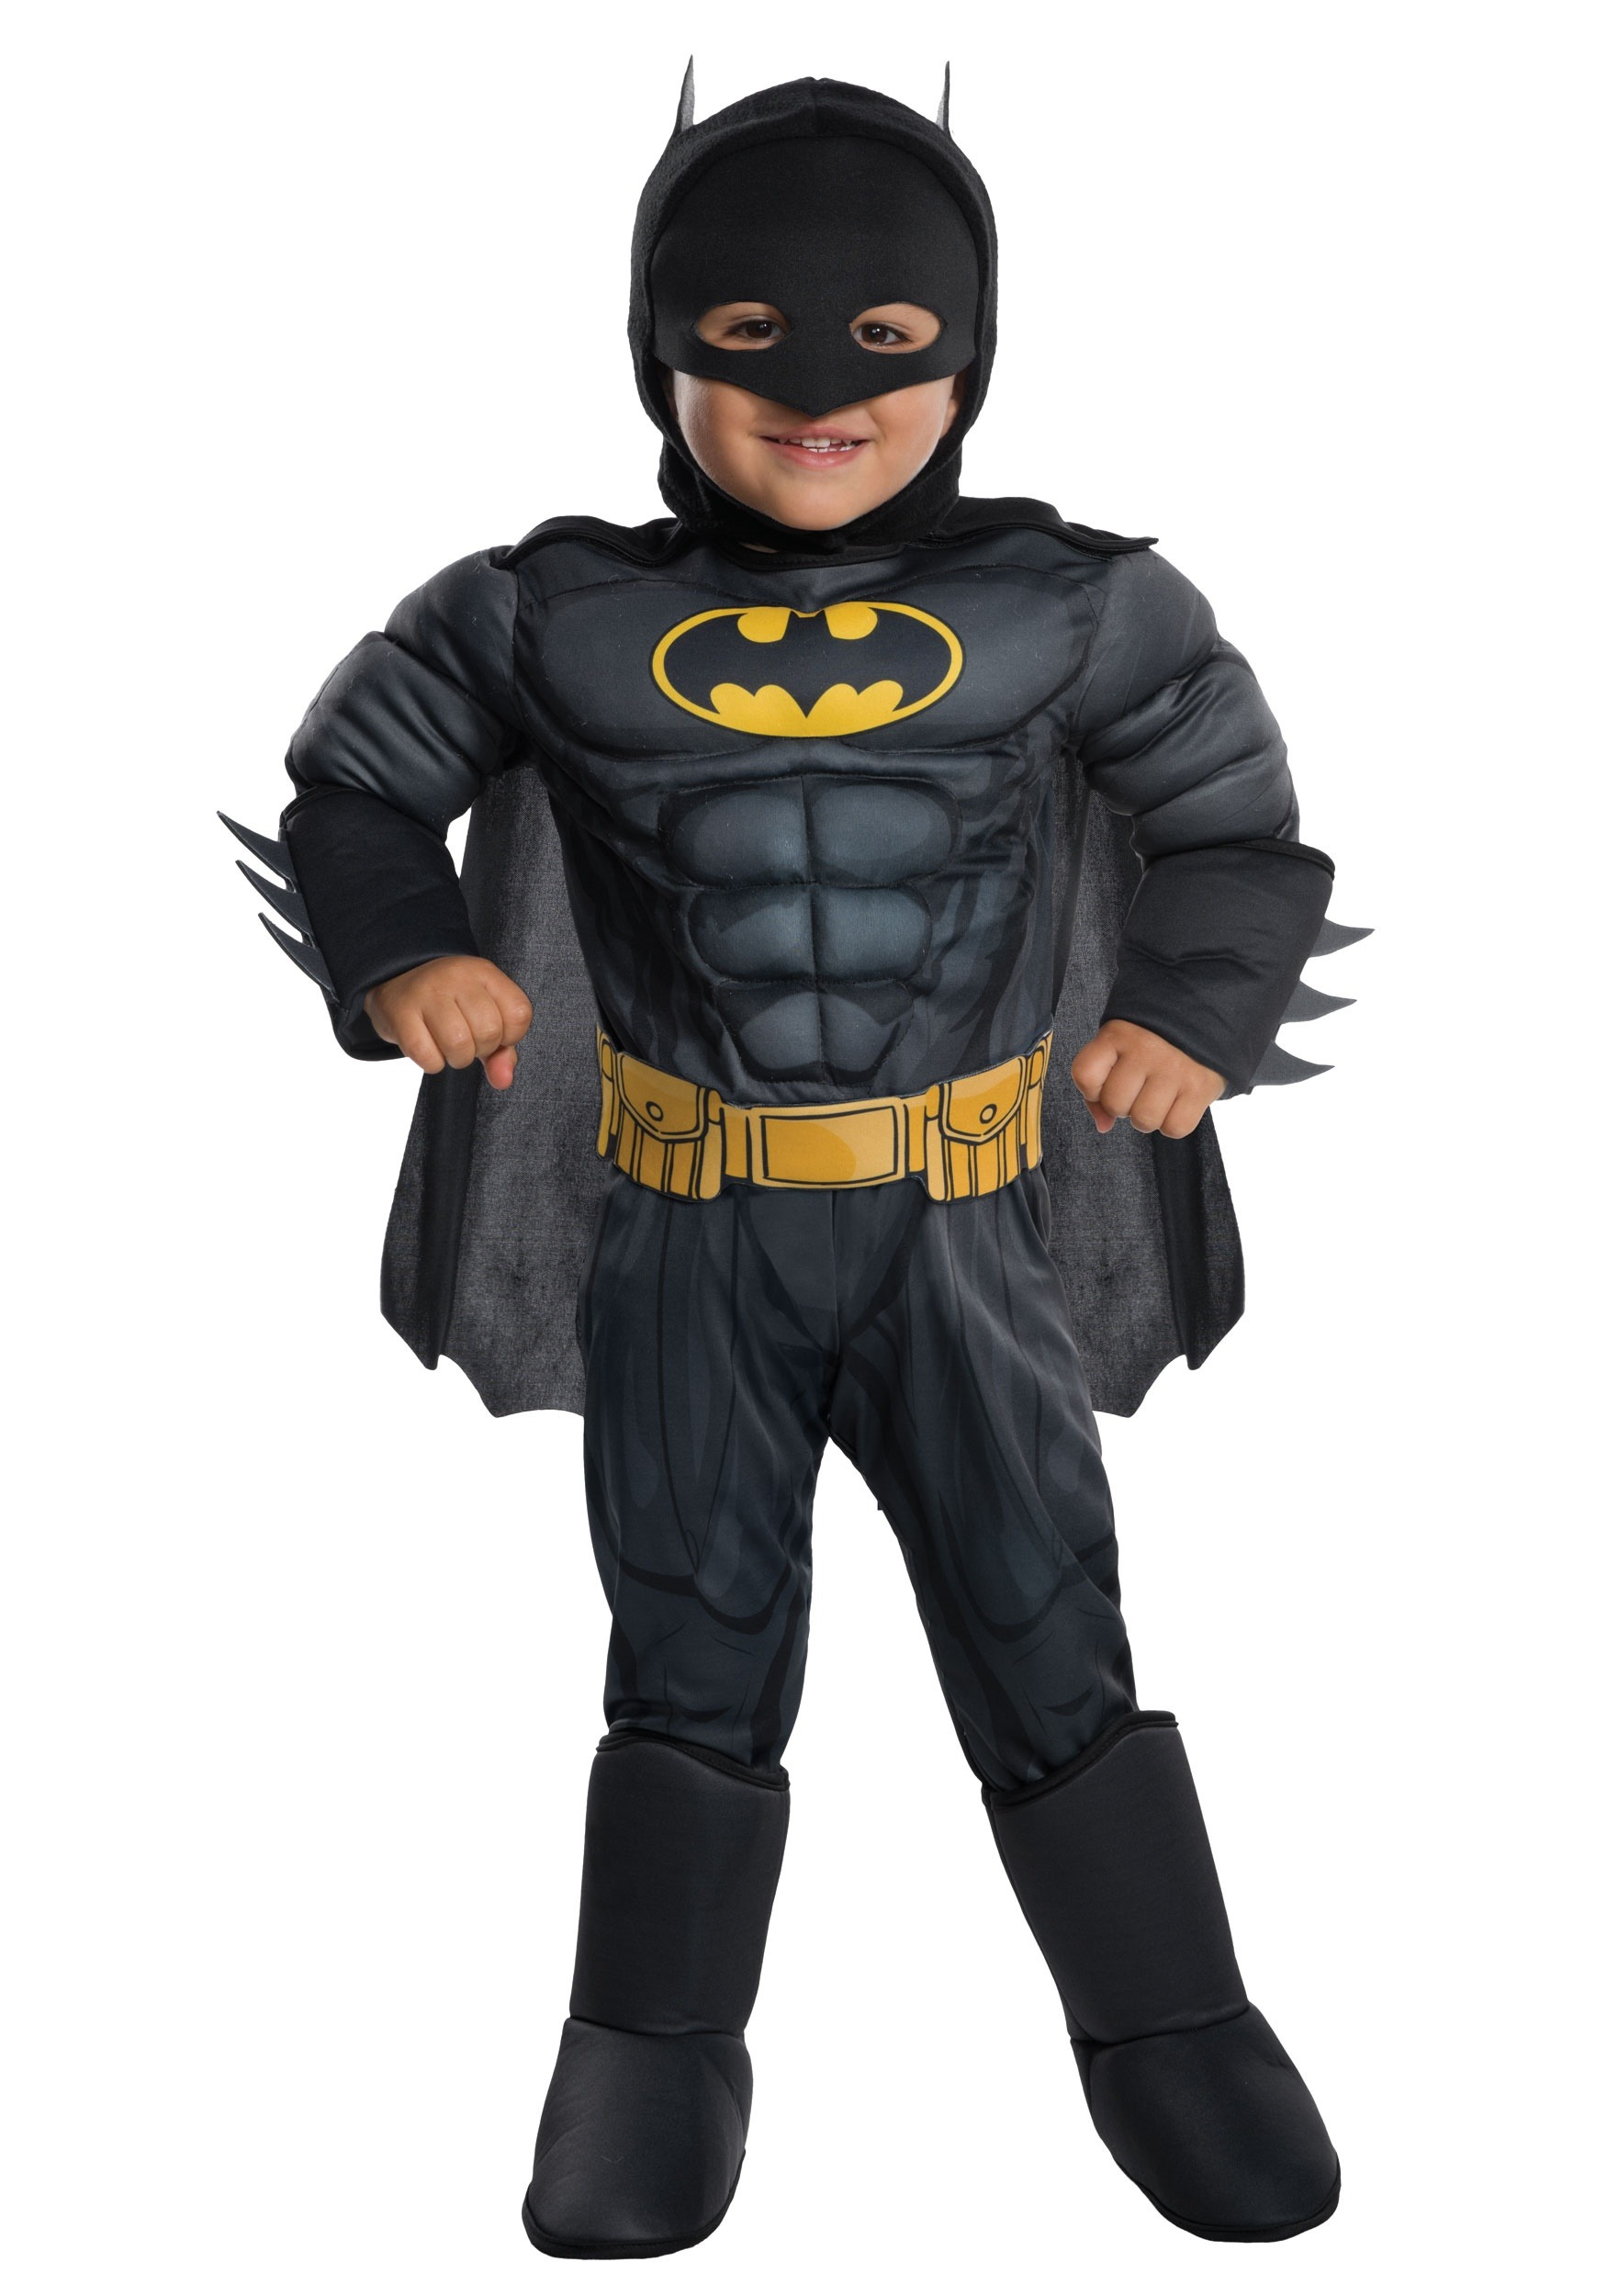 Deluxe Batman Costume for Toddler | Toddler Superhero Costume